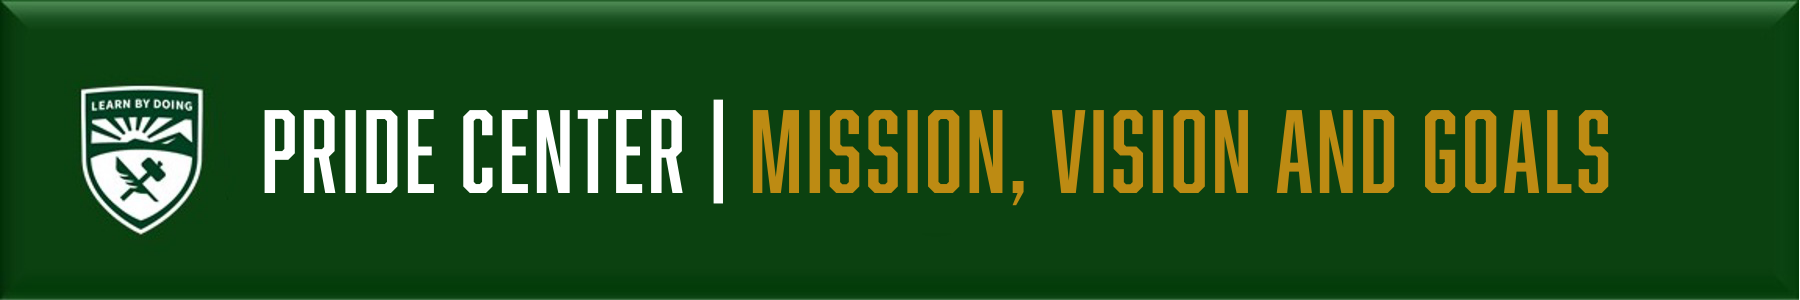 Mission, Vision, and Goals Banner